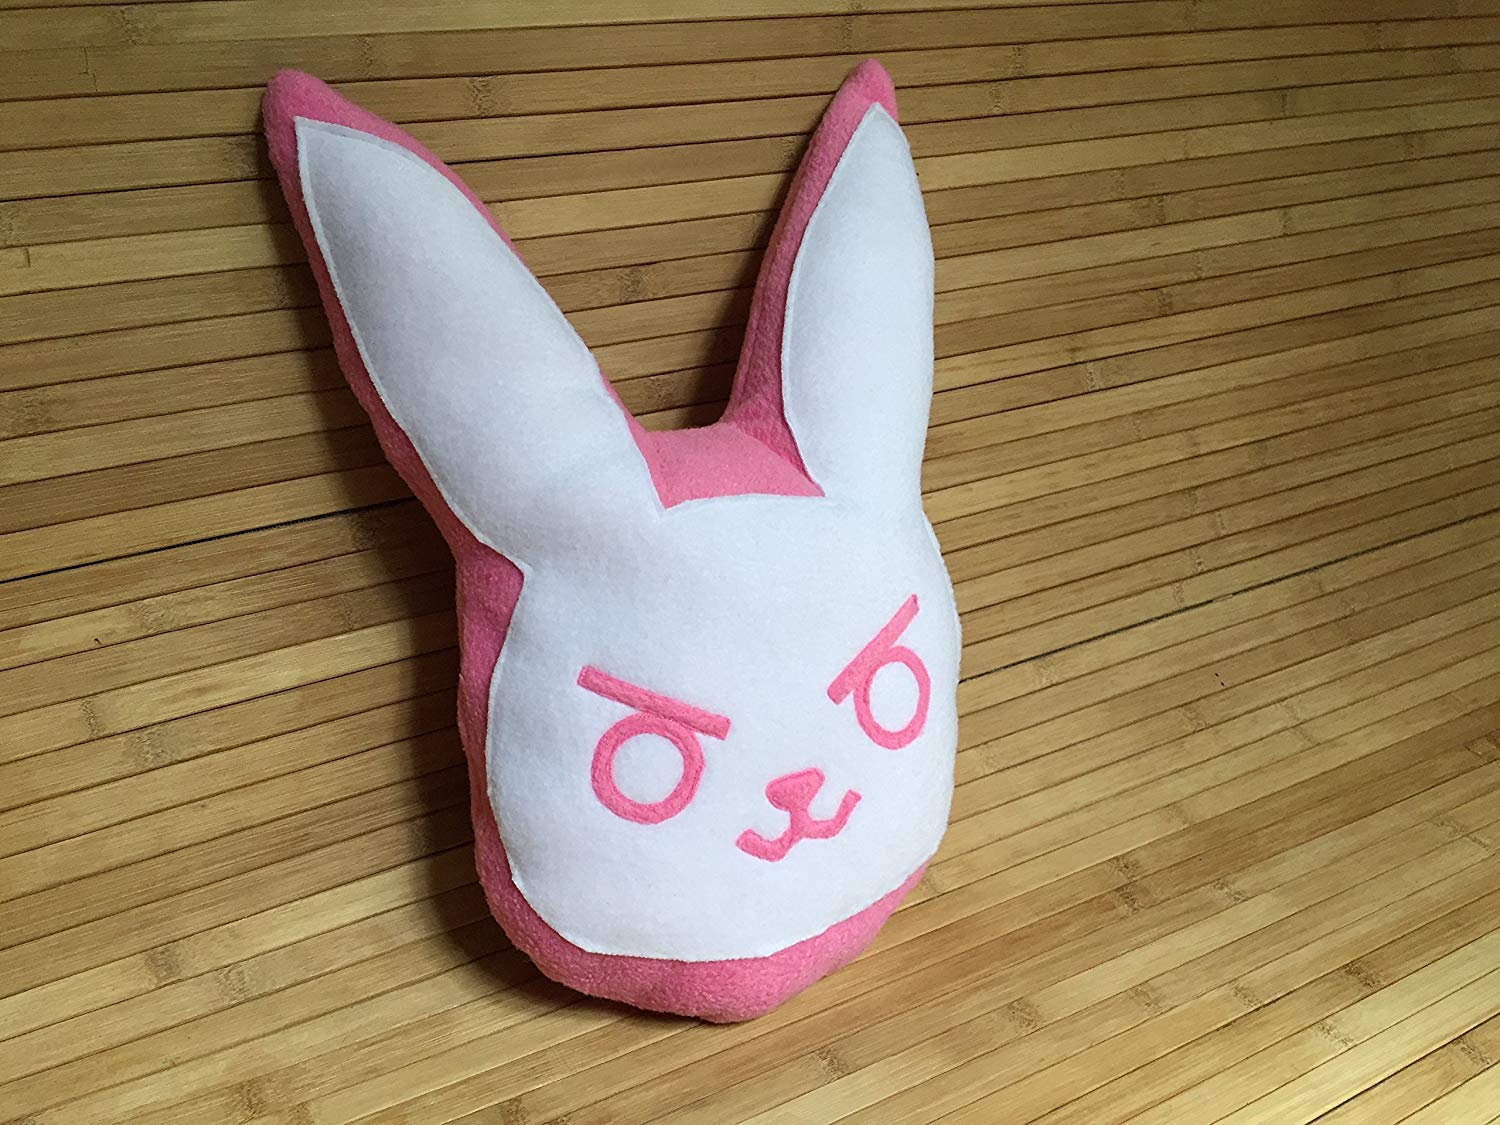 "Handmade 14x10"" Overwatch D.Va Bunny Throw Pillow, Game DVa OW Fanart Inspired Plush, Black or Dark Pink or Pink: you choose, Stuffed Toy, Travel Buddy Cushion, Super Cute Rabbit Plushie"